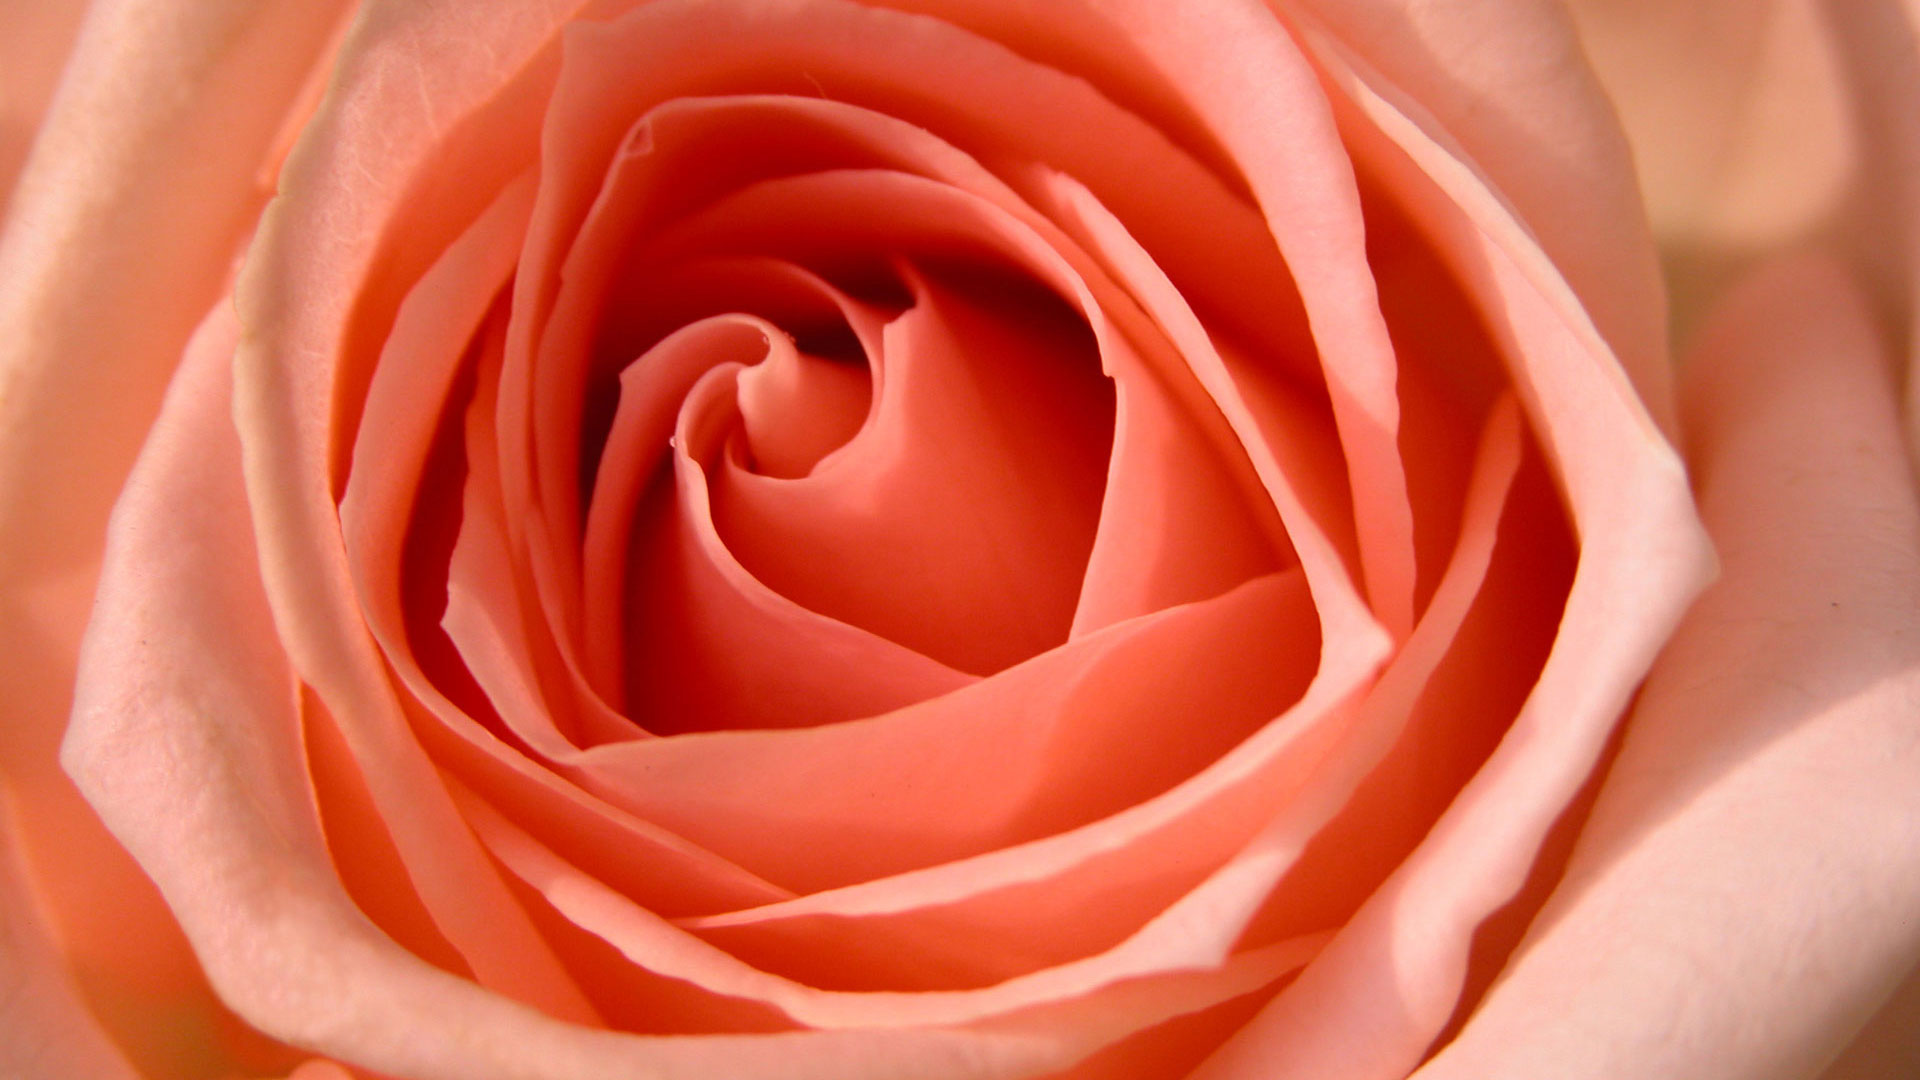 HD Wallpapers Rose HDTV 1080p